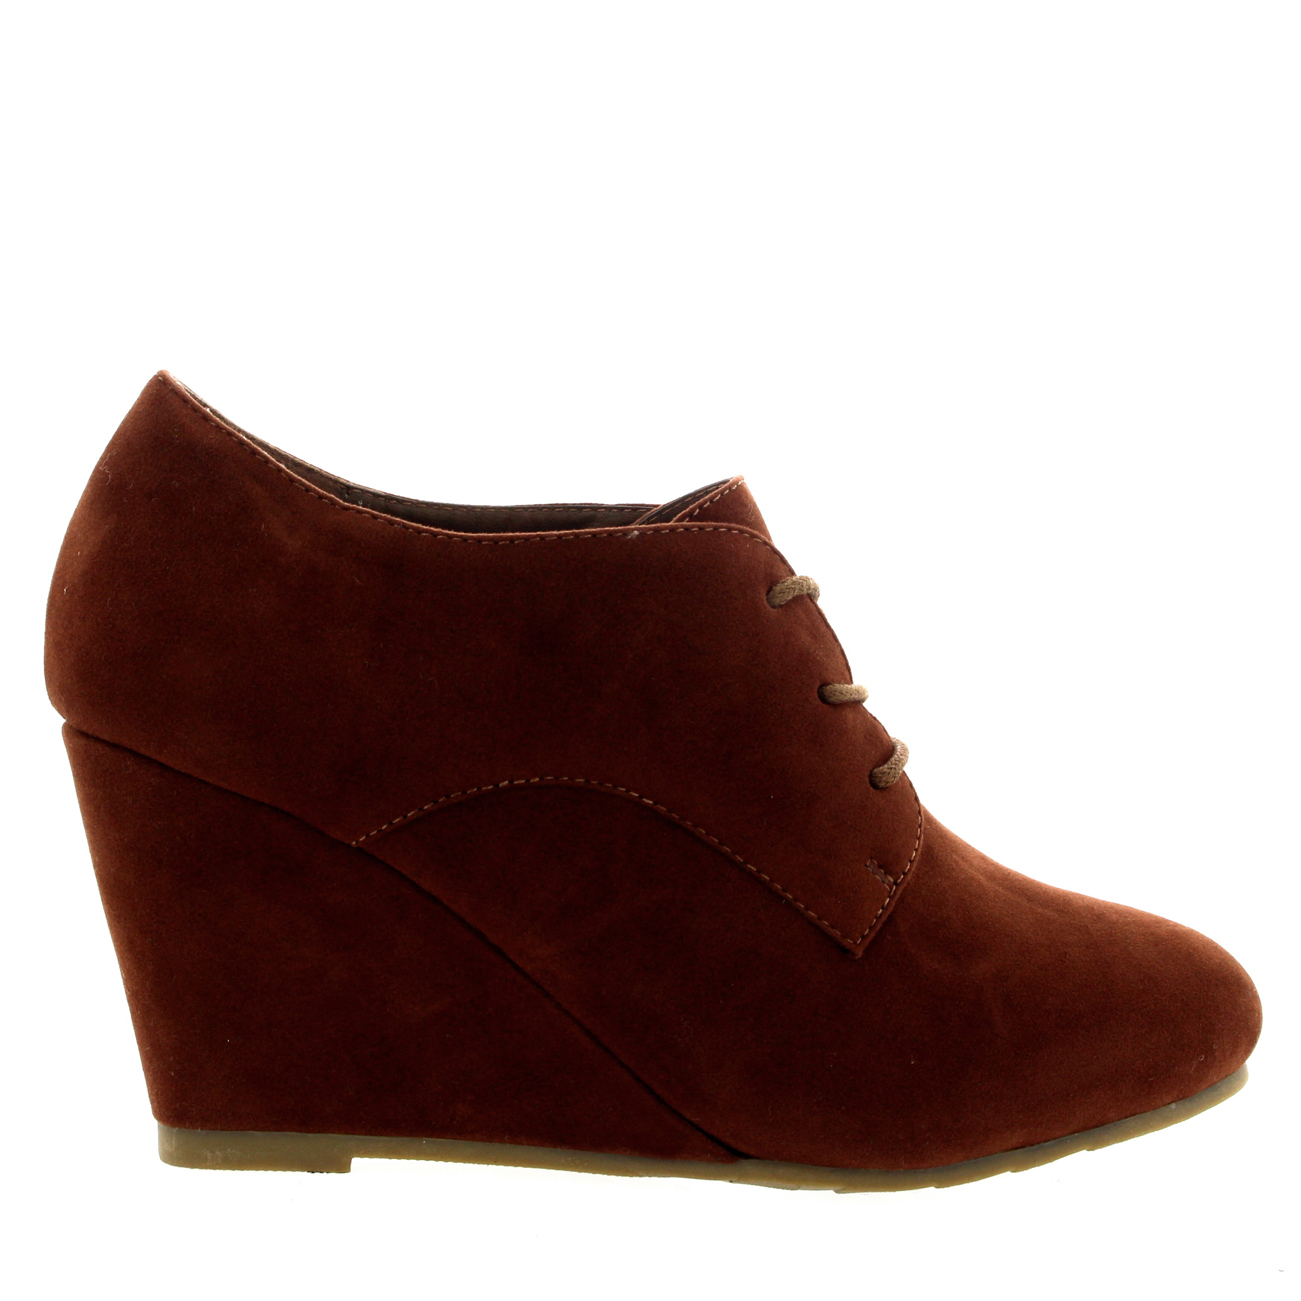 Wedge Heel Lace Up Boots